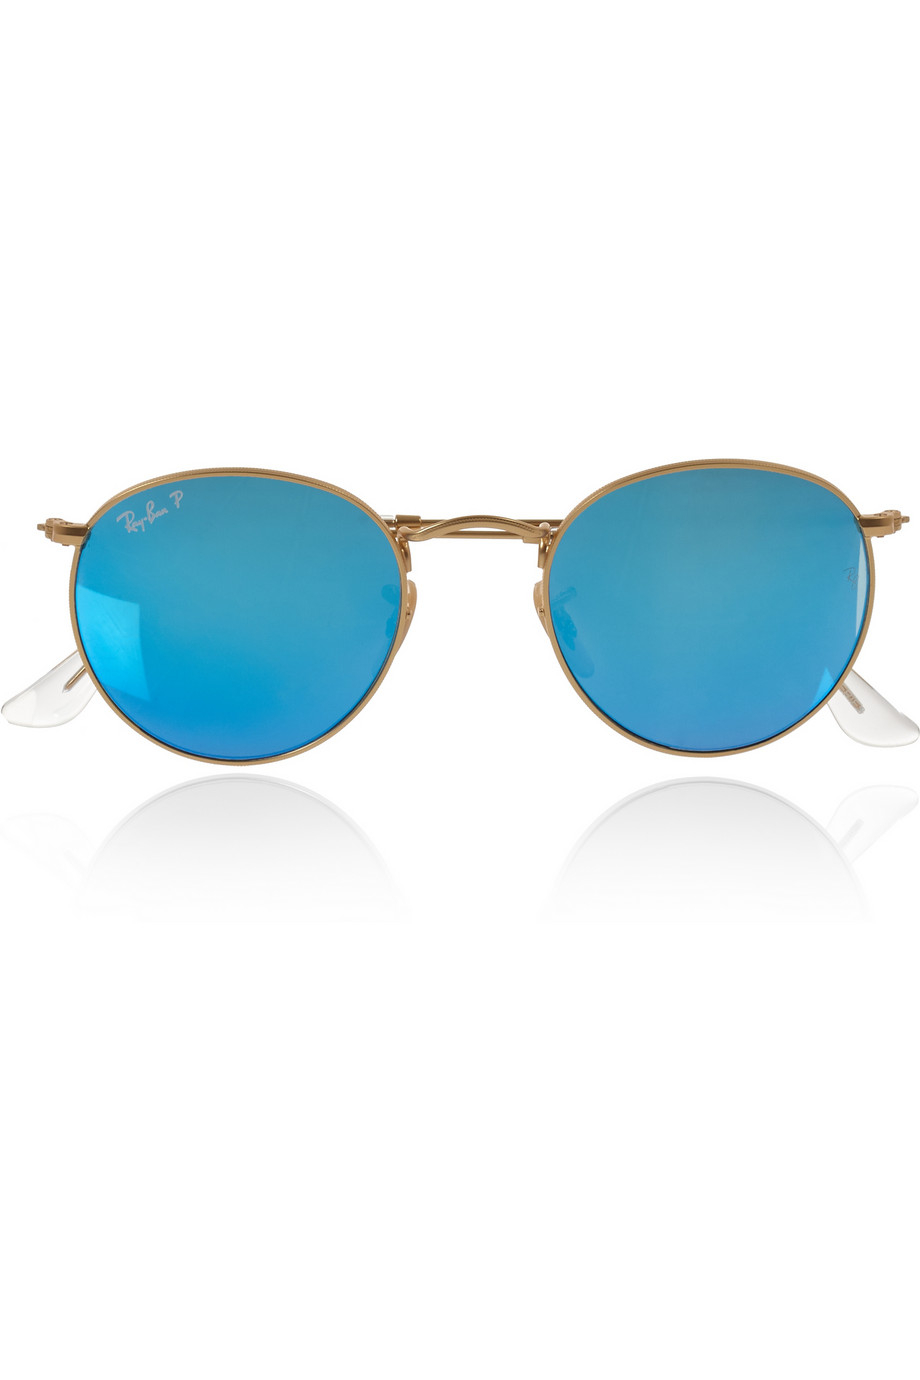 ray ban round sunglasses polarized  gallery